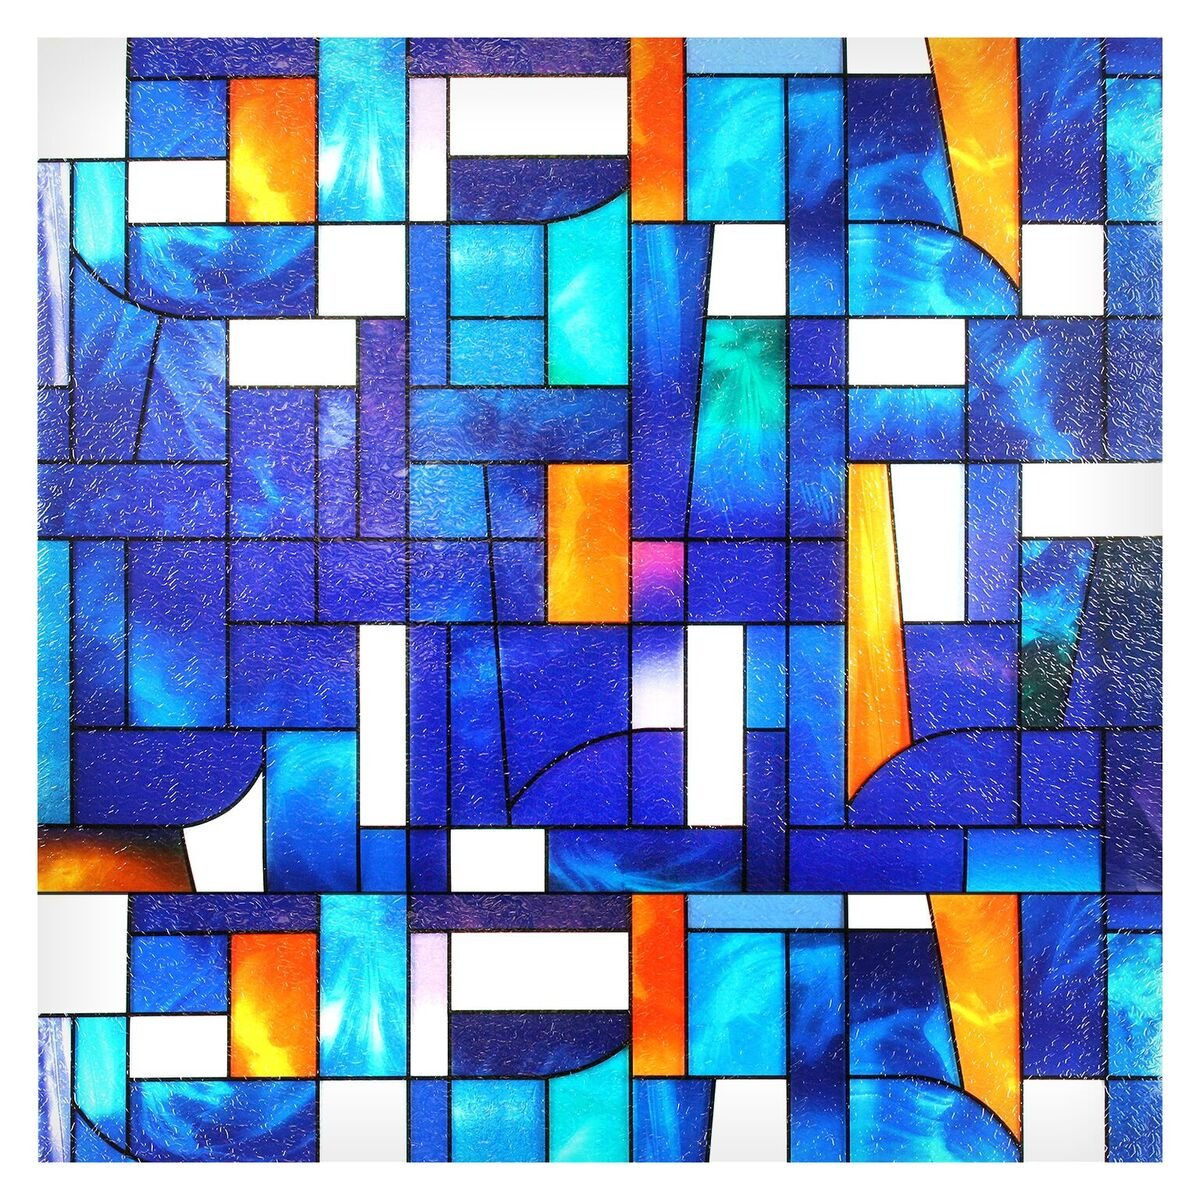 Buydecorativefilm BDF3ABST1 Abstract Stained Glass Window Film, 36-Inch-by-26-Inch (1 Pattern)